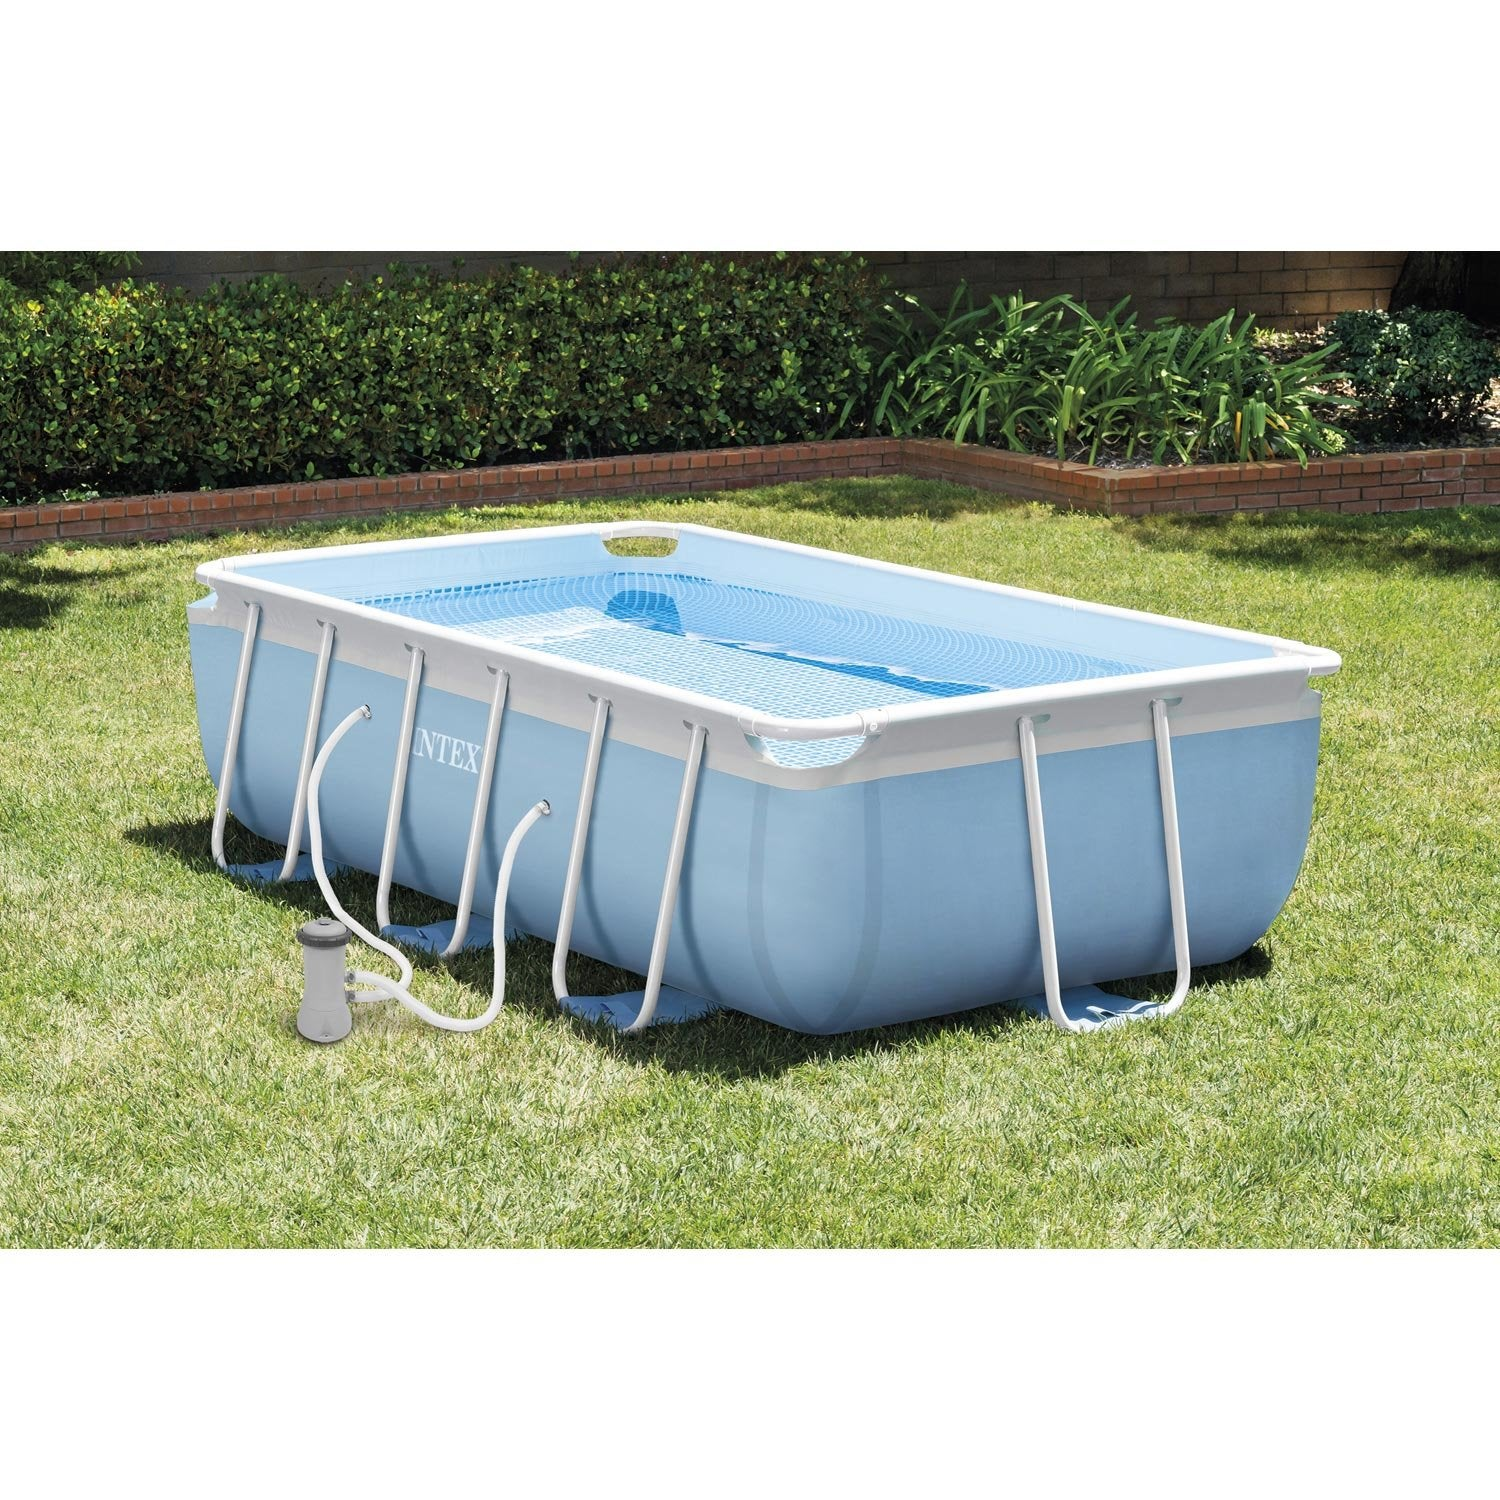 Piscine hors sol autoportante tubulaire intex l 3 4 x l 2 for Piscine hors sol intex